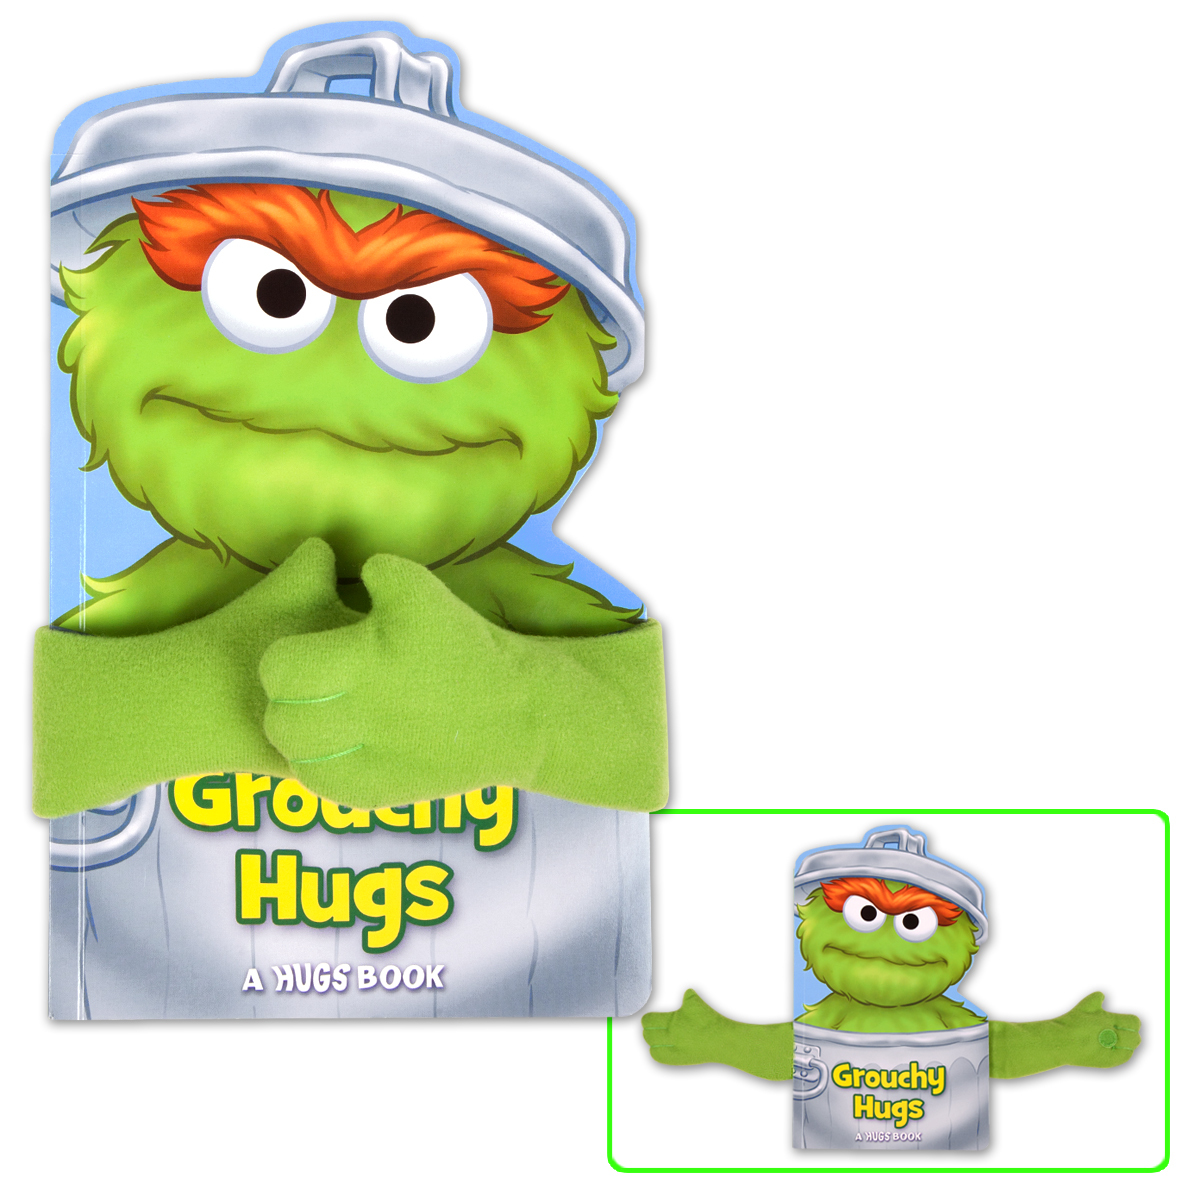 Sesame Street Grouchy Hugs! Book